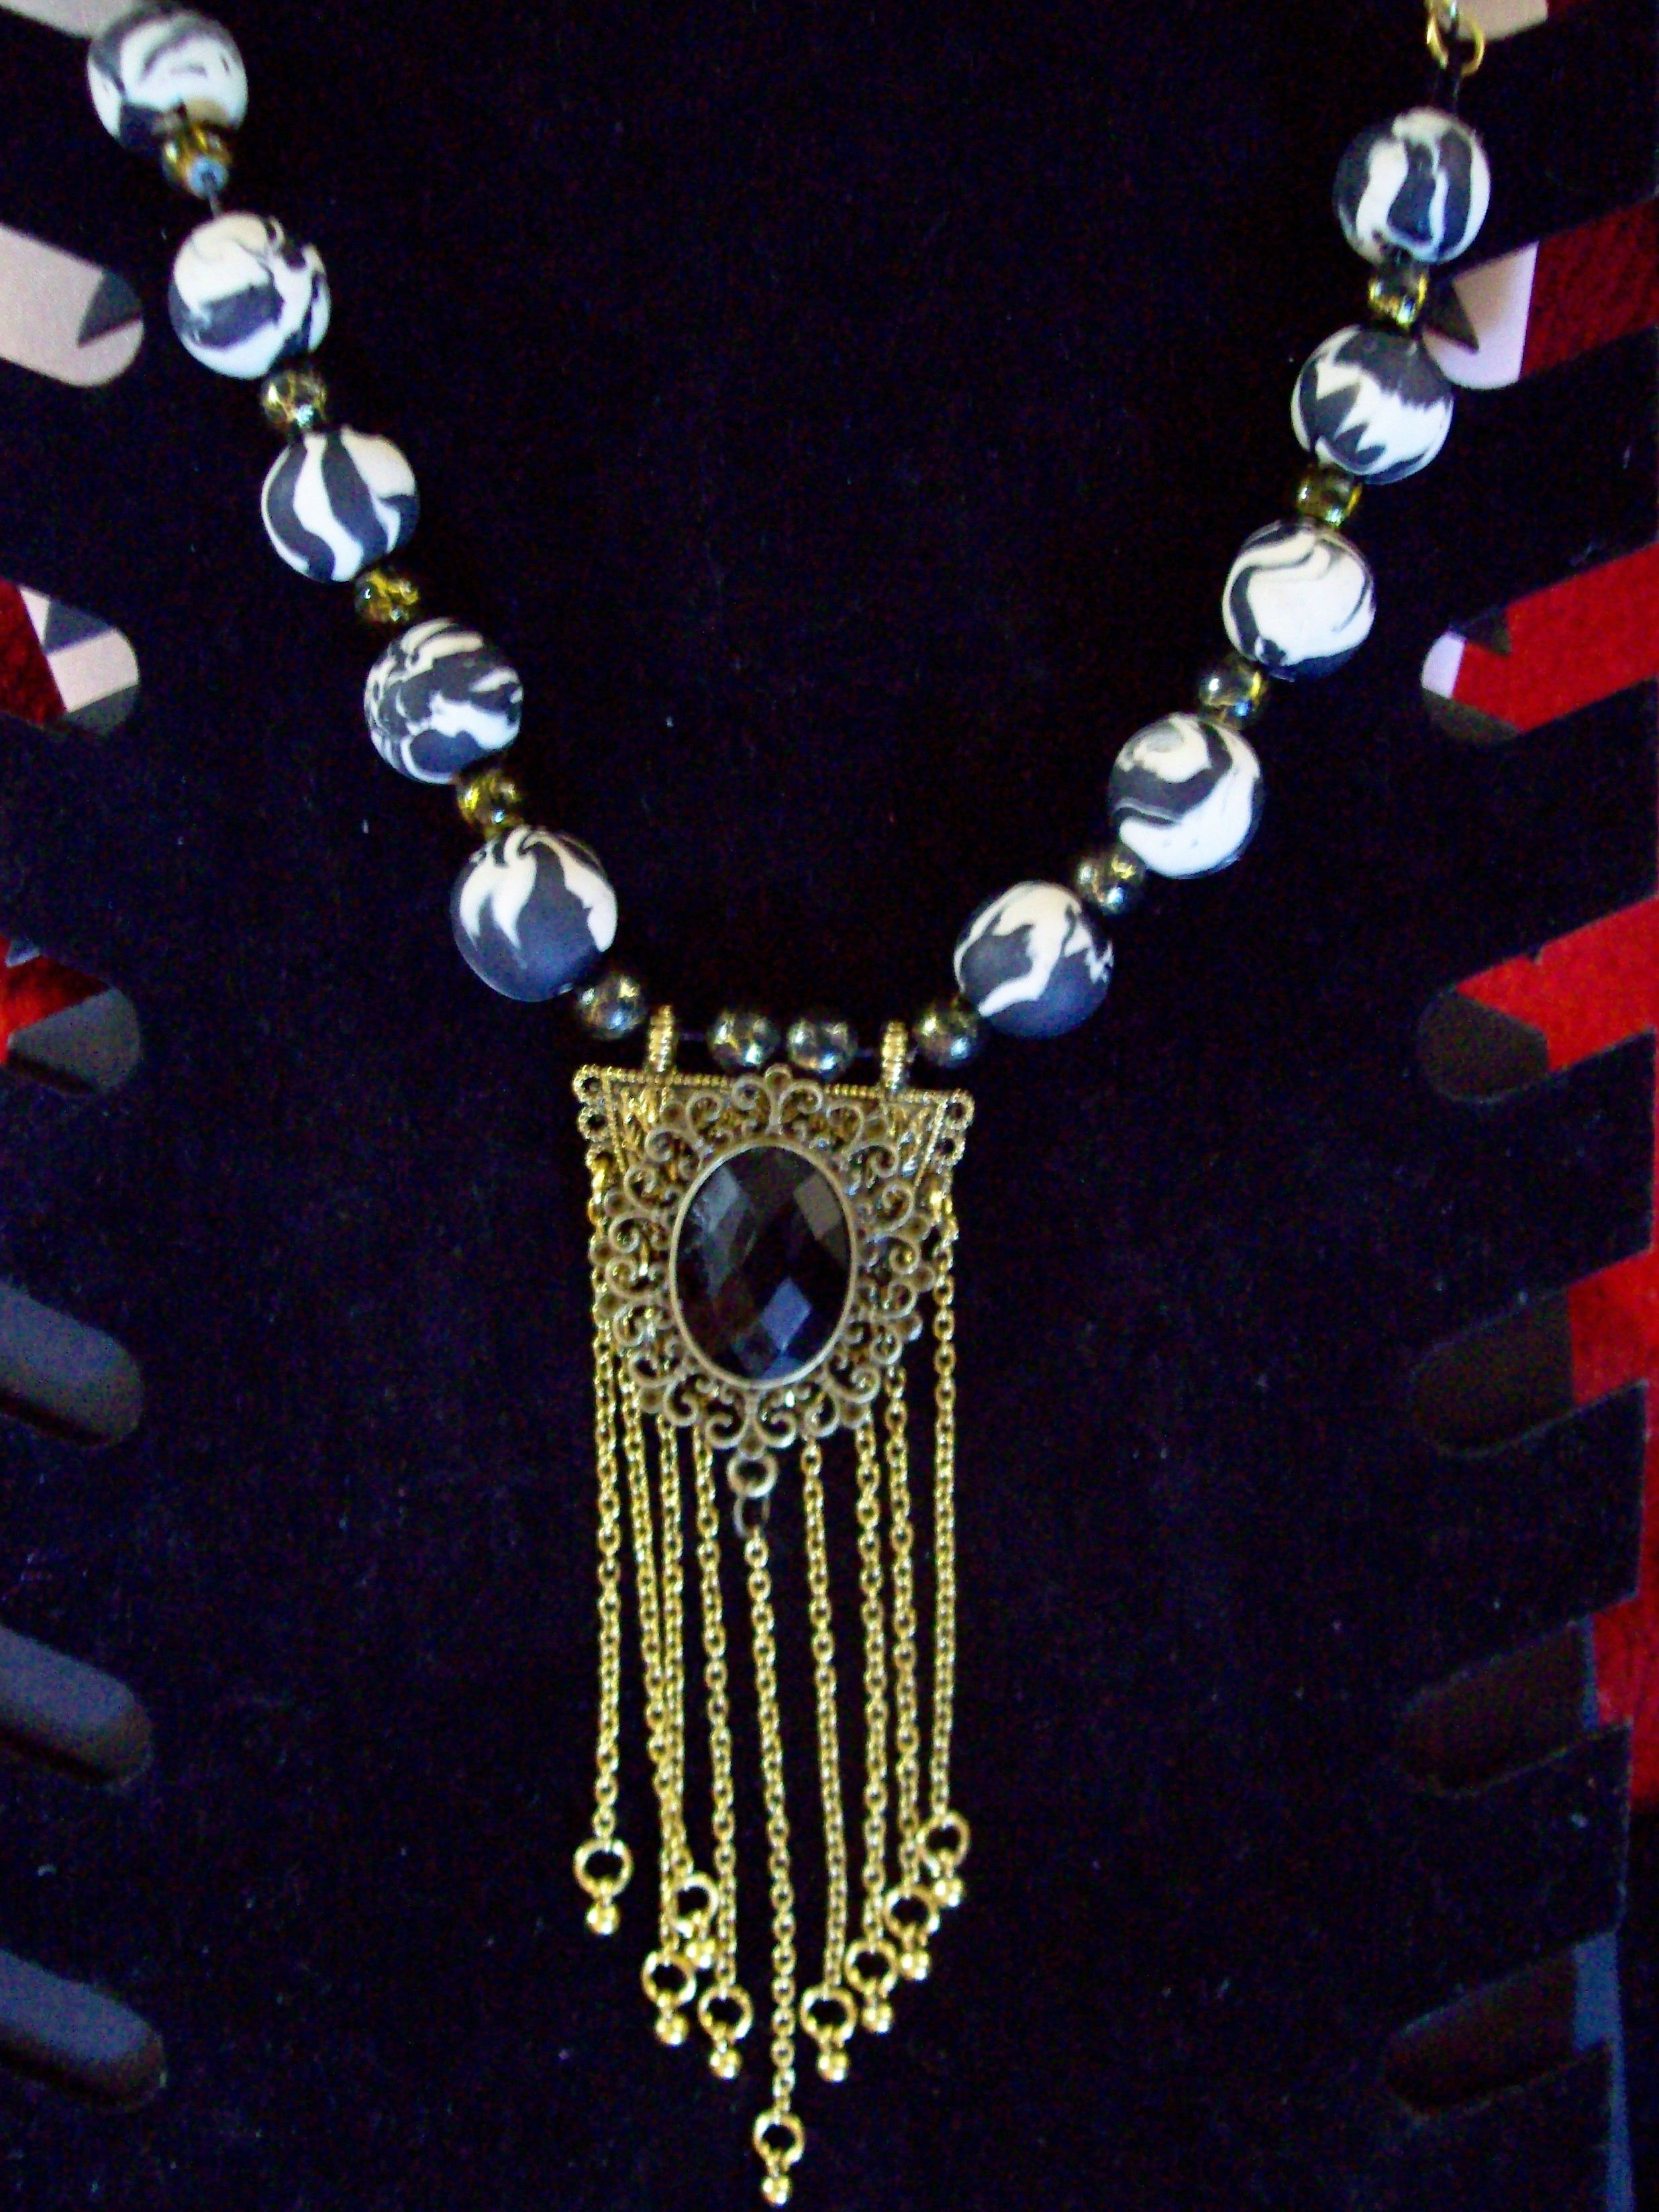 a1219deb22cd2 Gothic Black and Gold choker with Polymer clay beads | Clay and ...